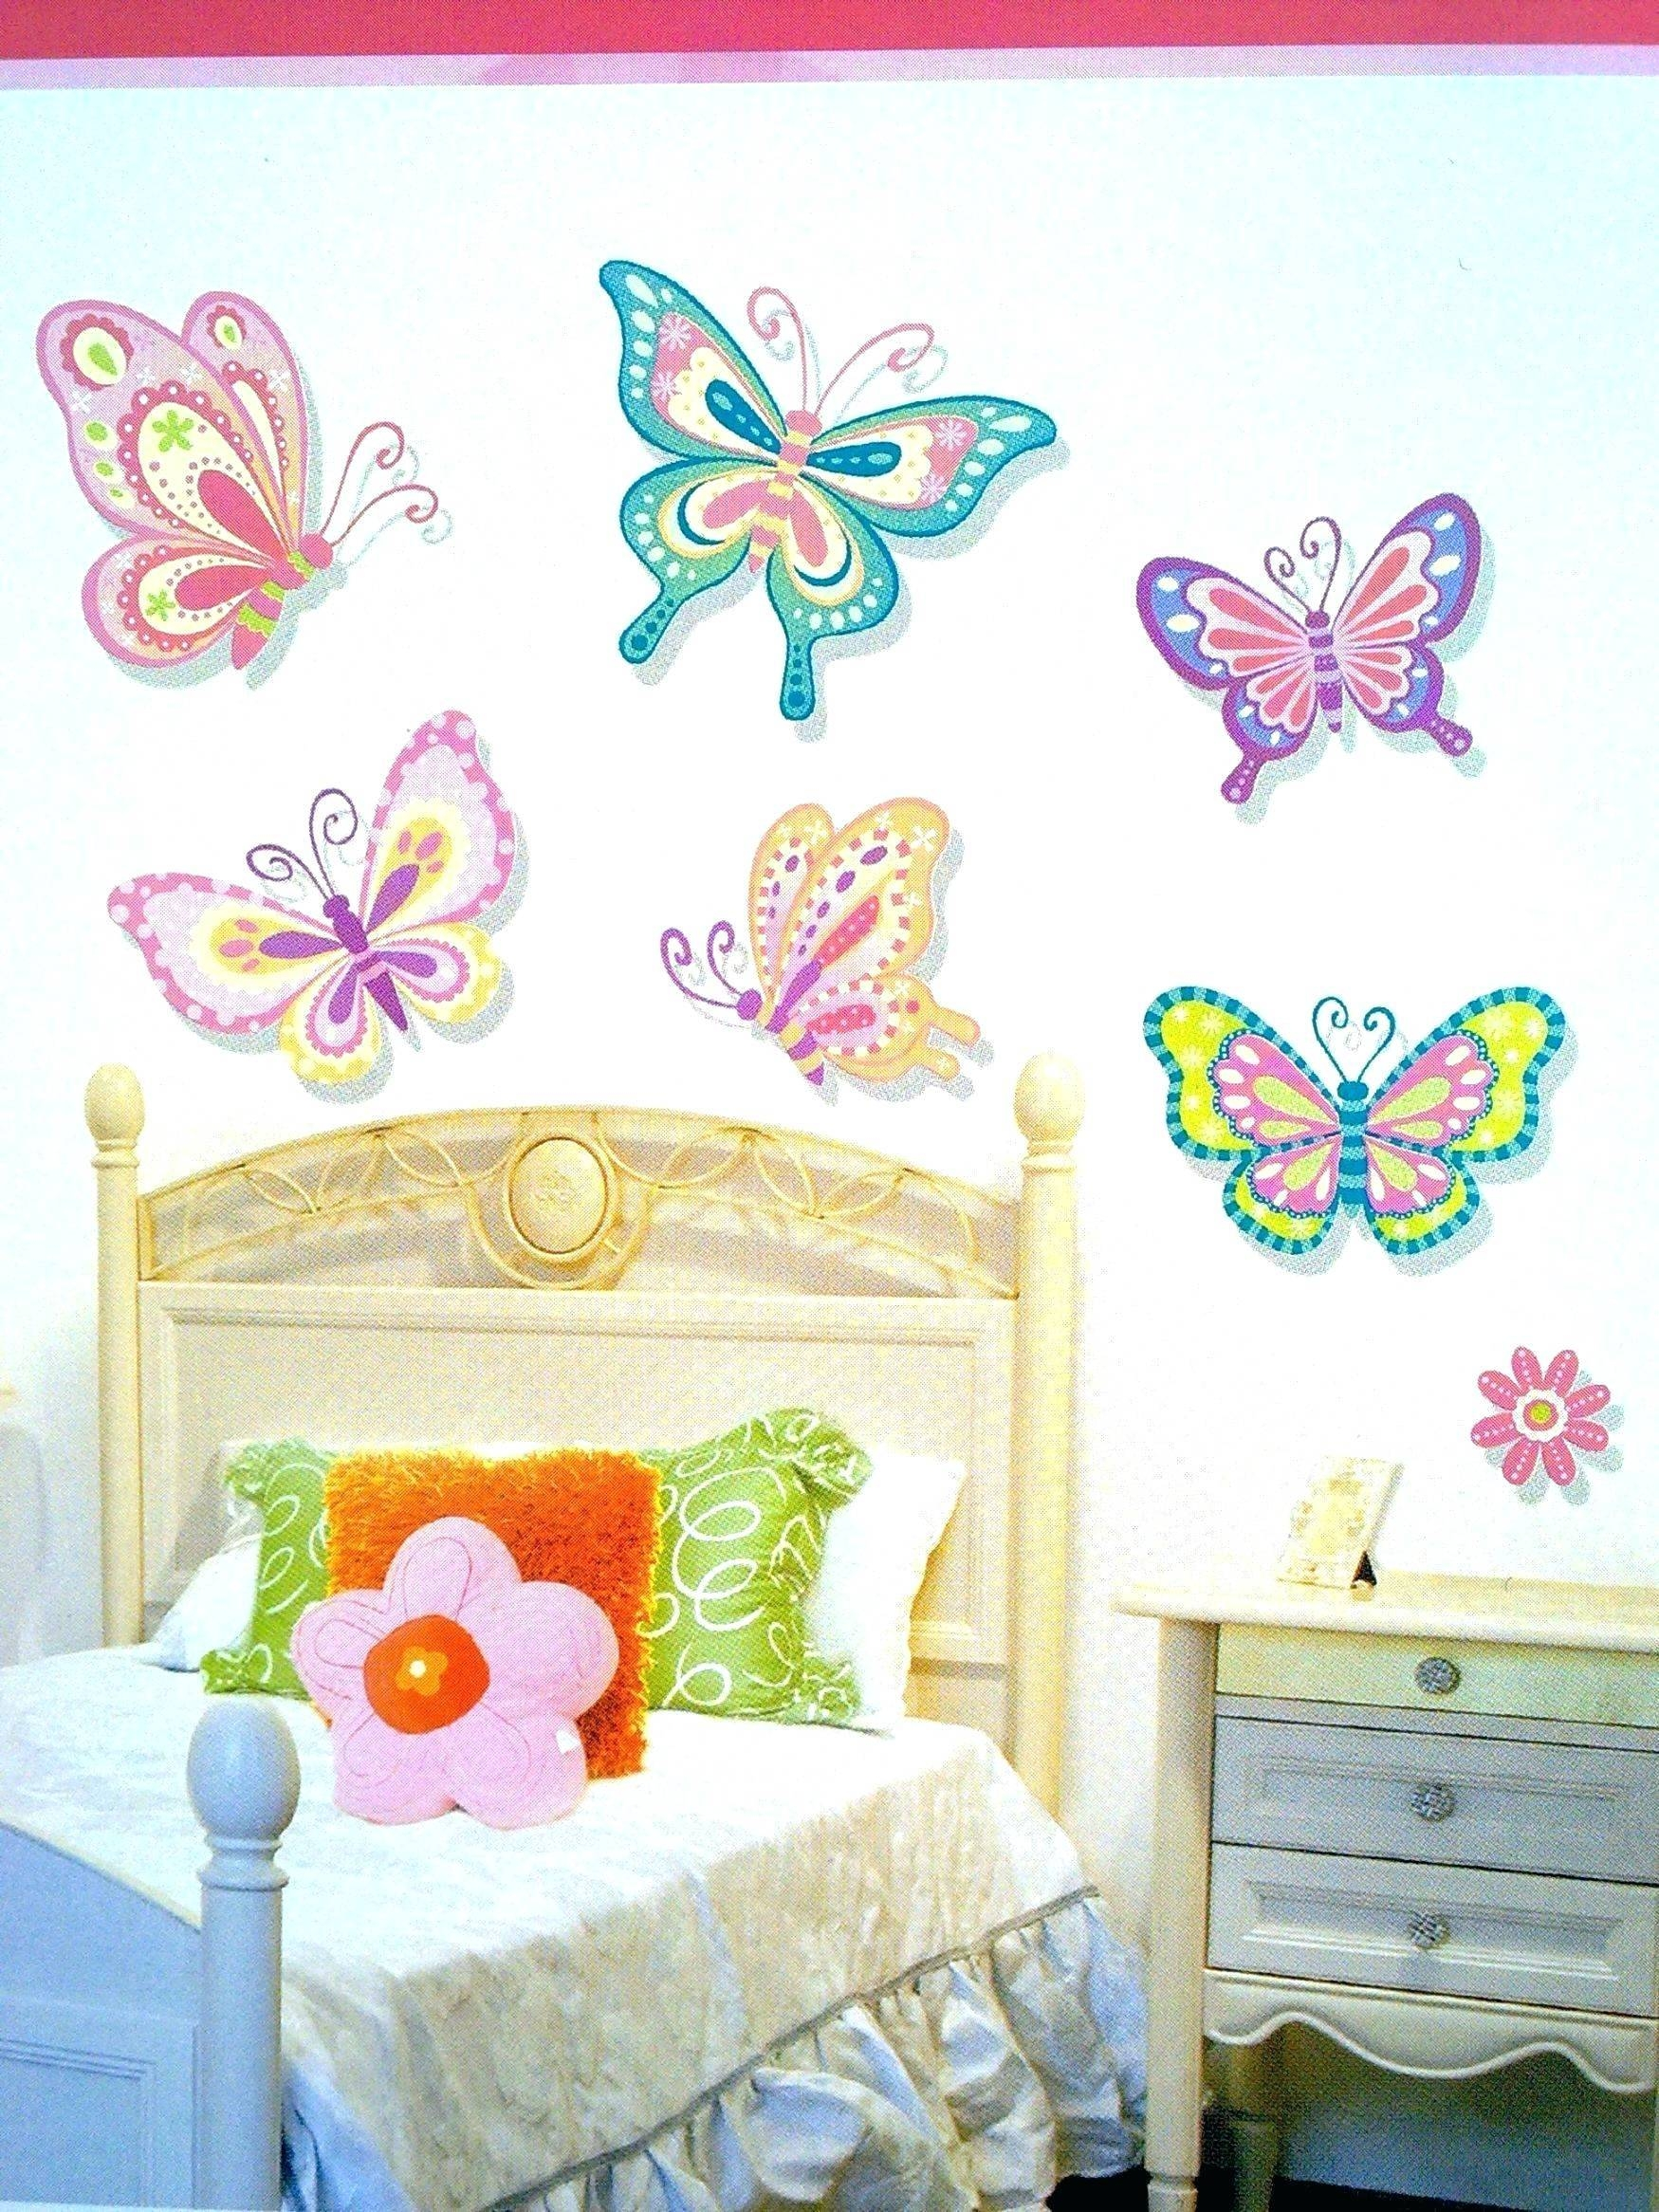 3D Butterfly Wall Decal Stickers Picture More Detailed Picture Regarding Most Current White 3D Butterfly Wall Art (View 7 of 20)